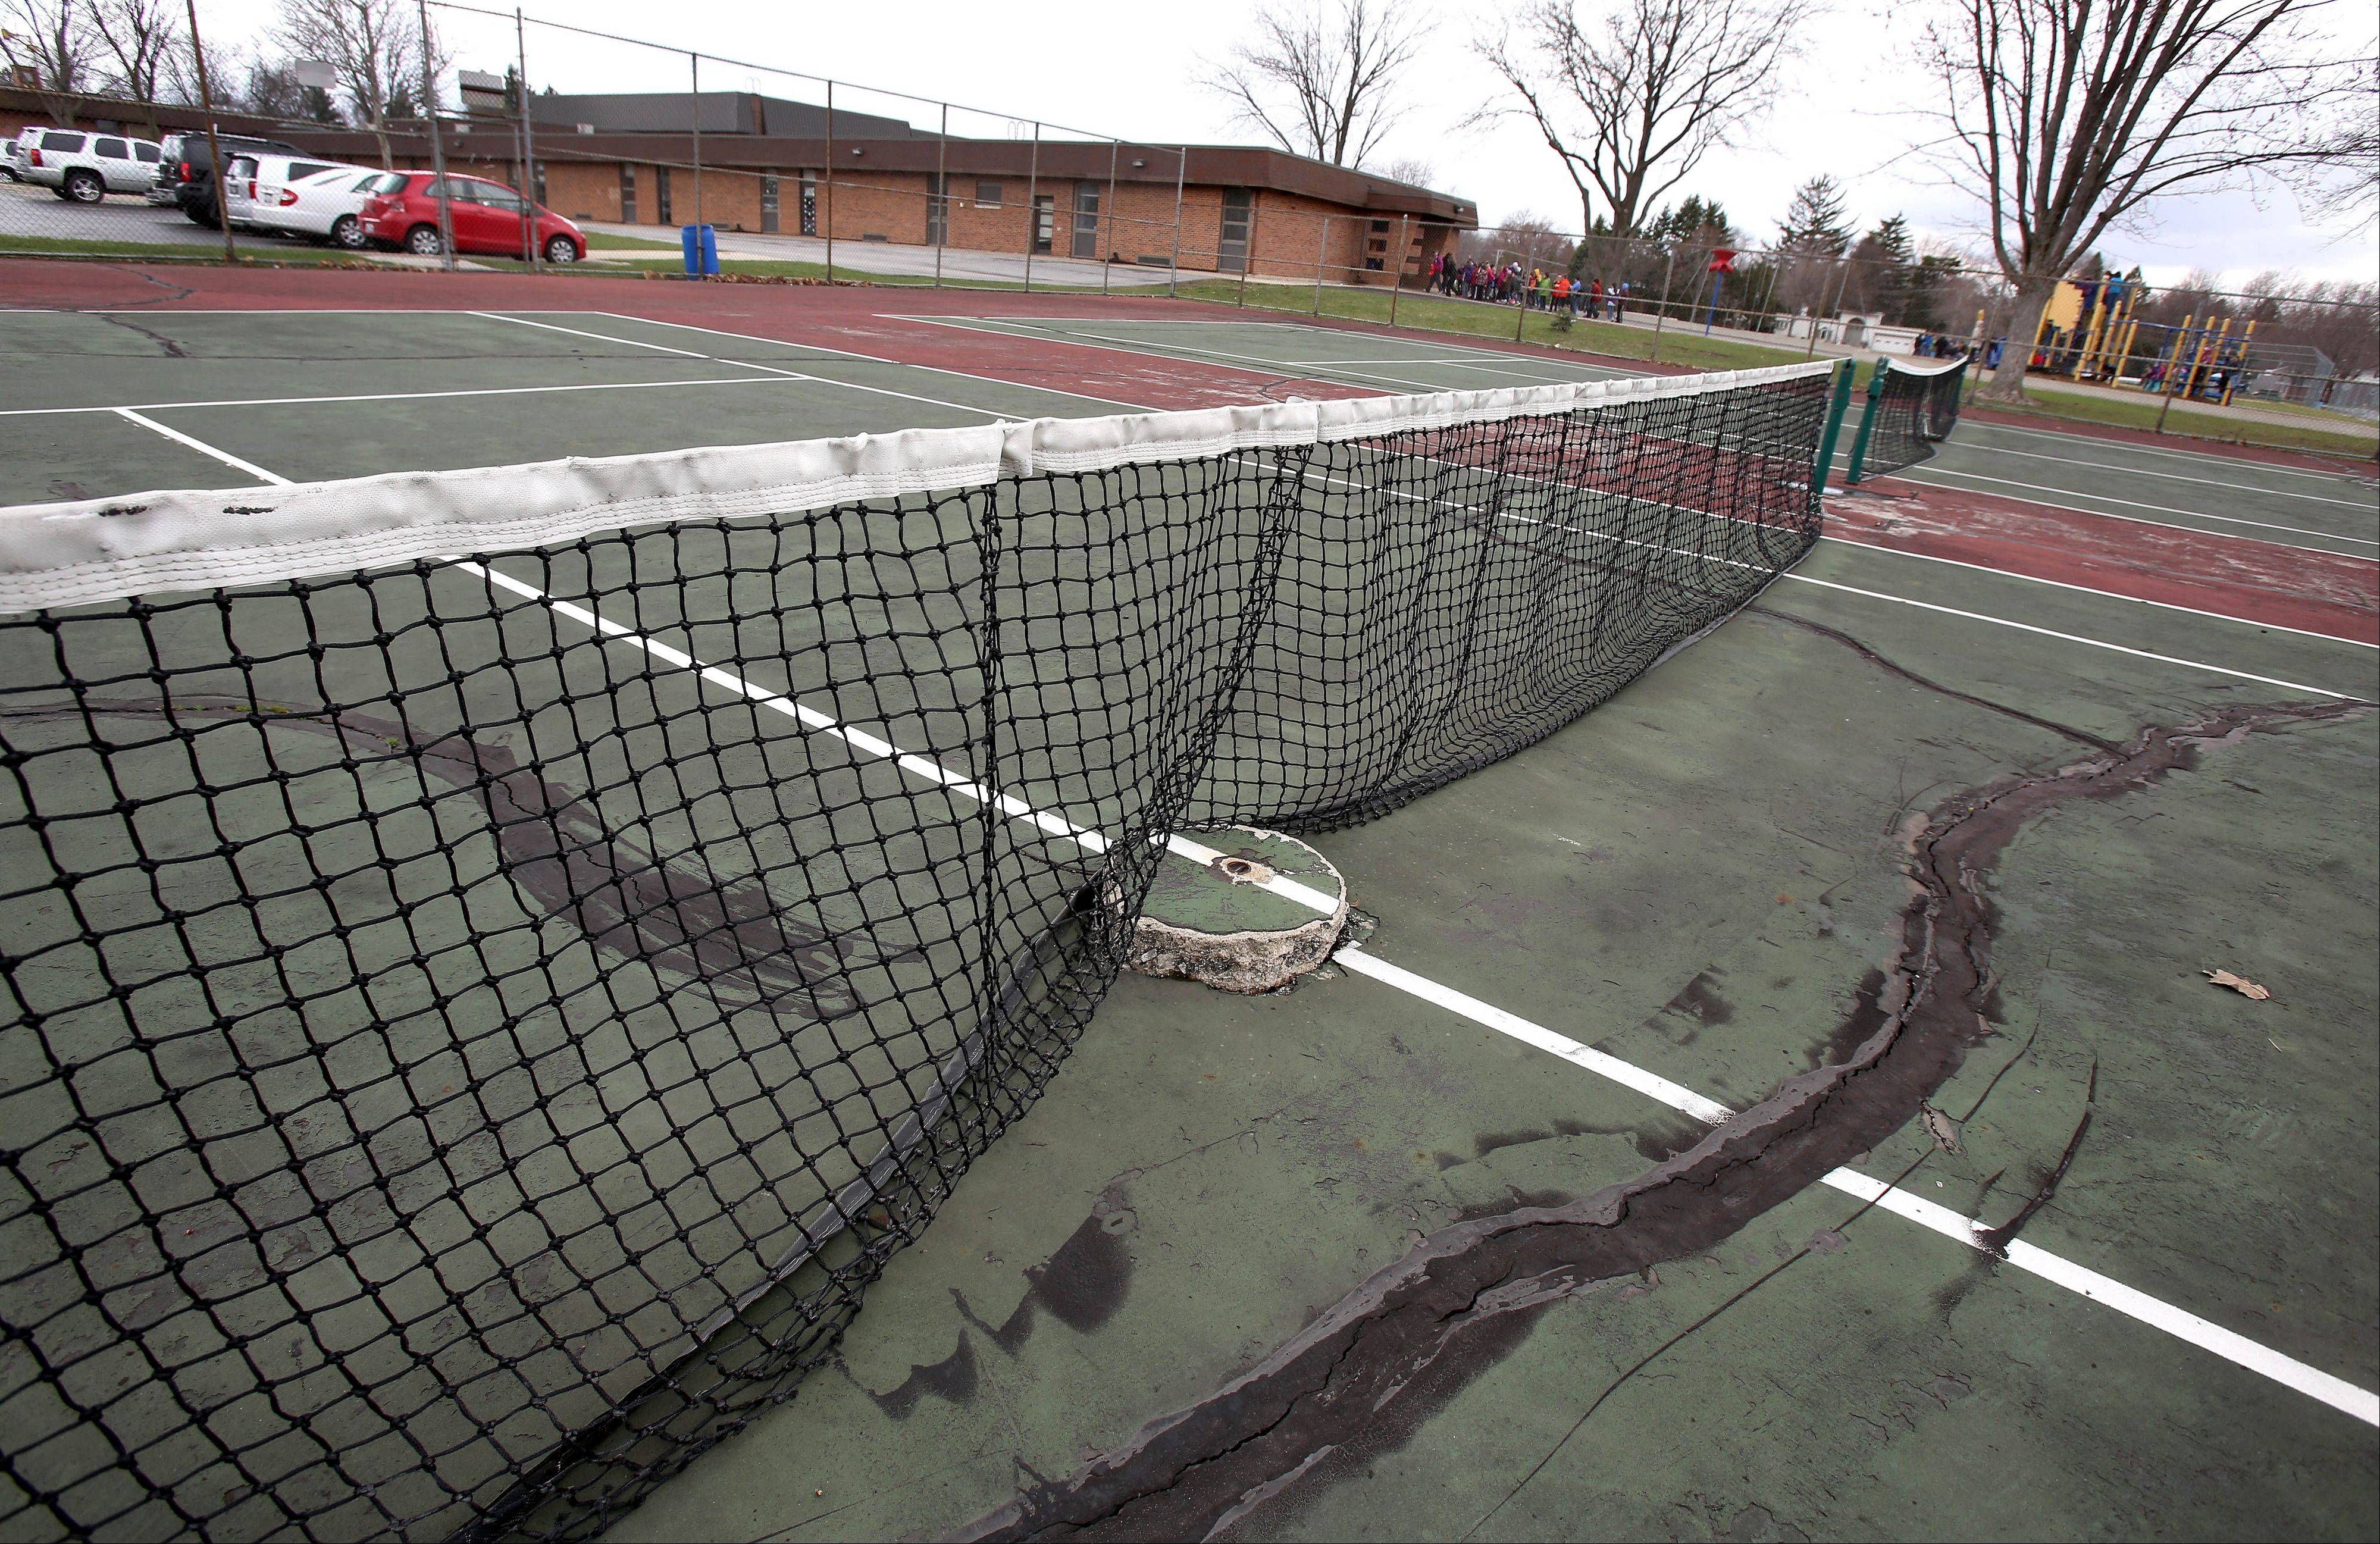 Parents are asking for the two tennis courts outside Pleasant Lane Elementary School in Lombard to be repaired instead of removed. The courts are on school property, but have been maintained by the Lombard Park District under an informal agreement.